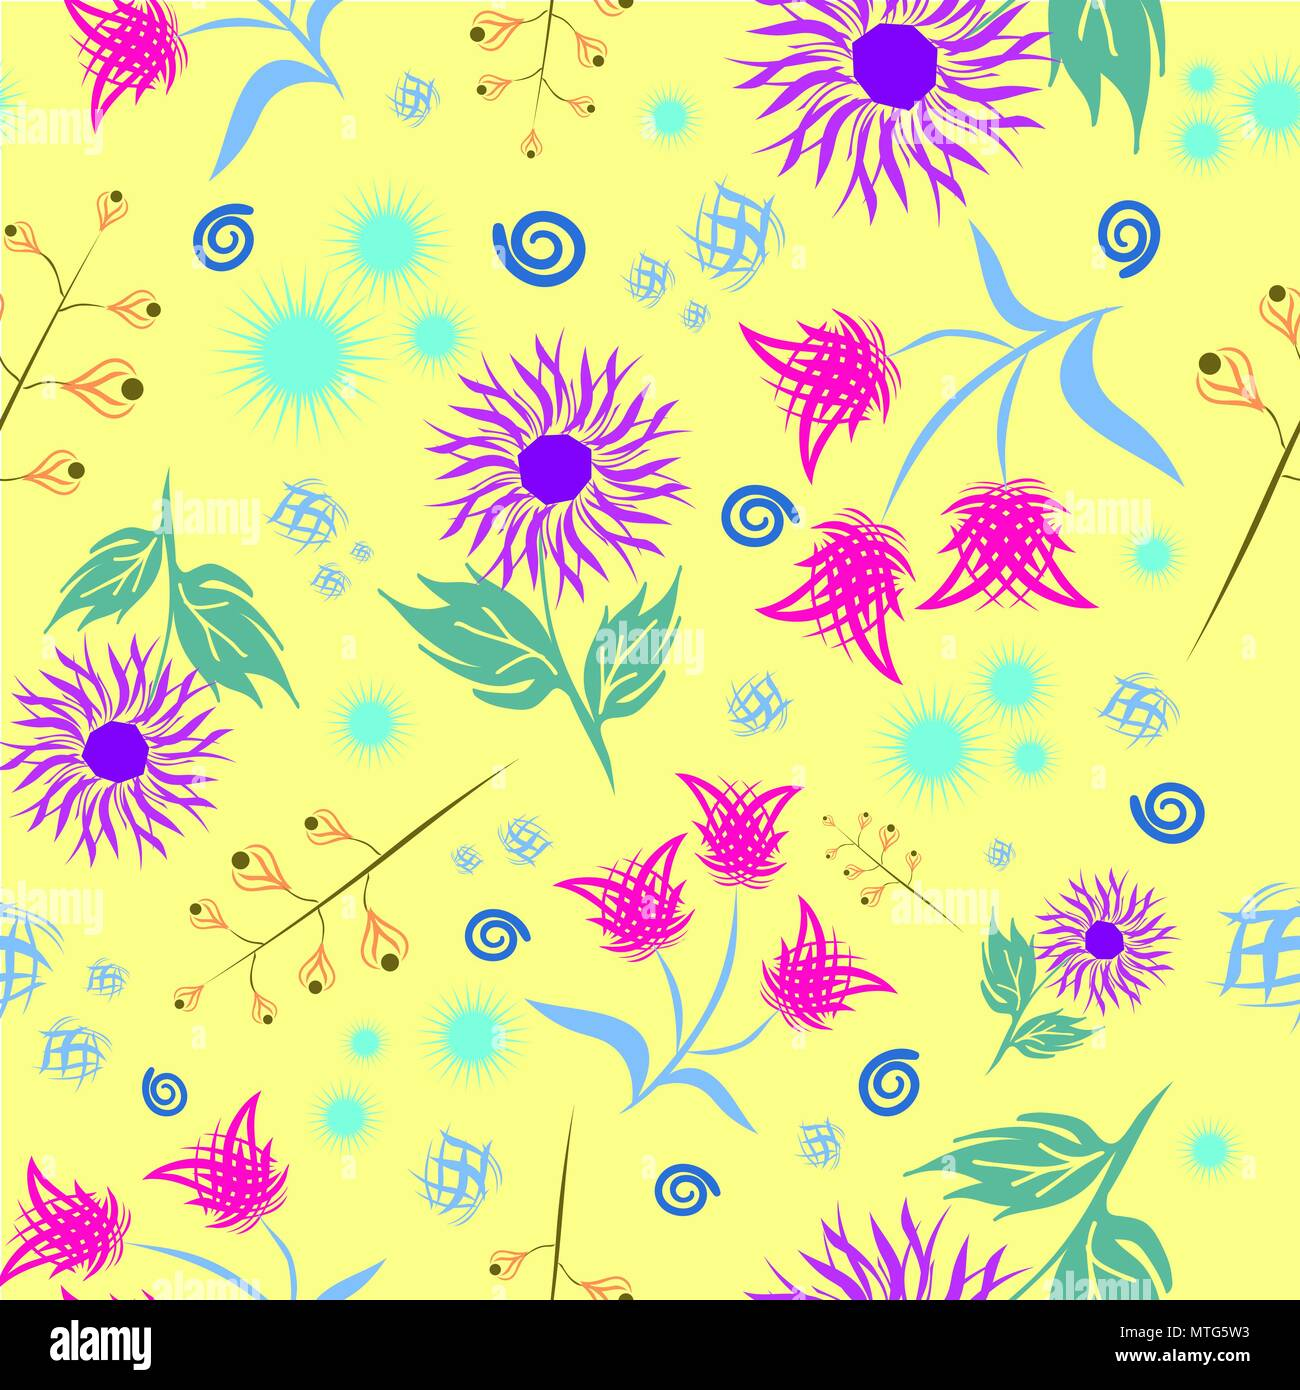 Seamless Floral Pattern Modern Abstract Bright Colorful Style